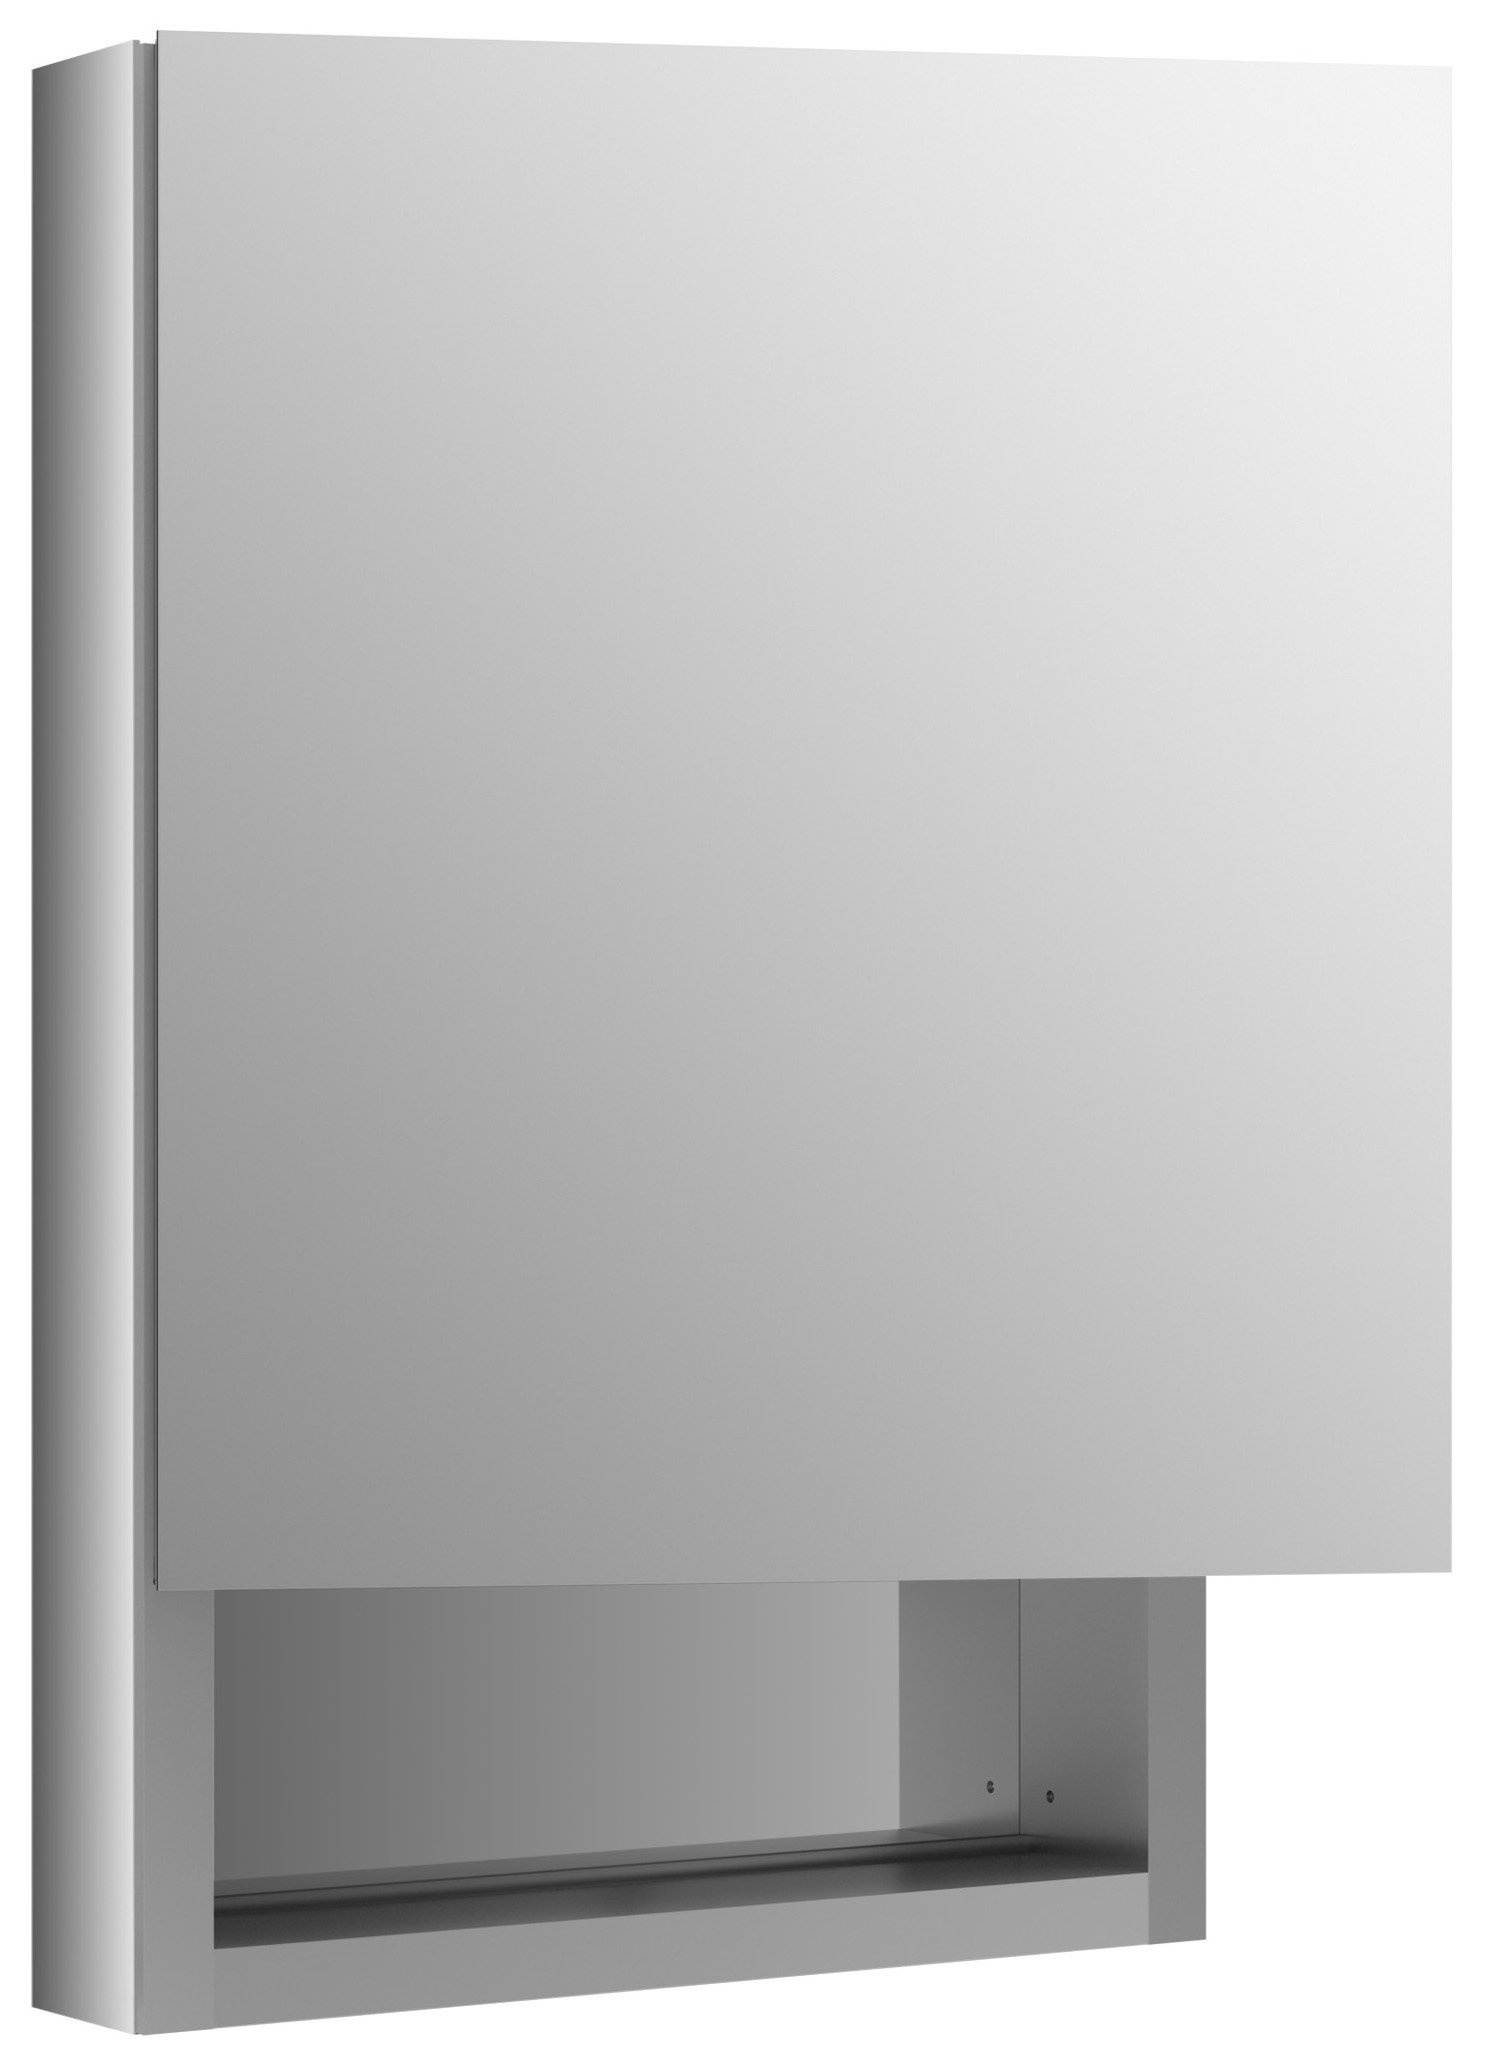 KOHLER K-99005-L-NA Verdera 20-Inch By 30-Inch Quick-Storage Medicine Cabinet With Magnifying Mirror, Left Hinge